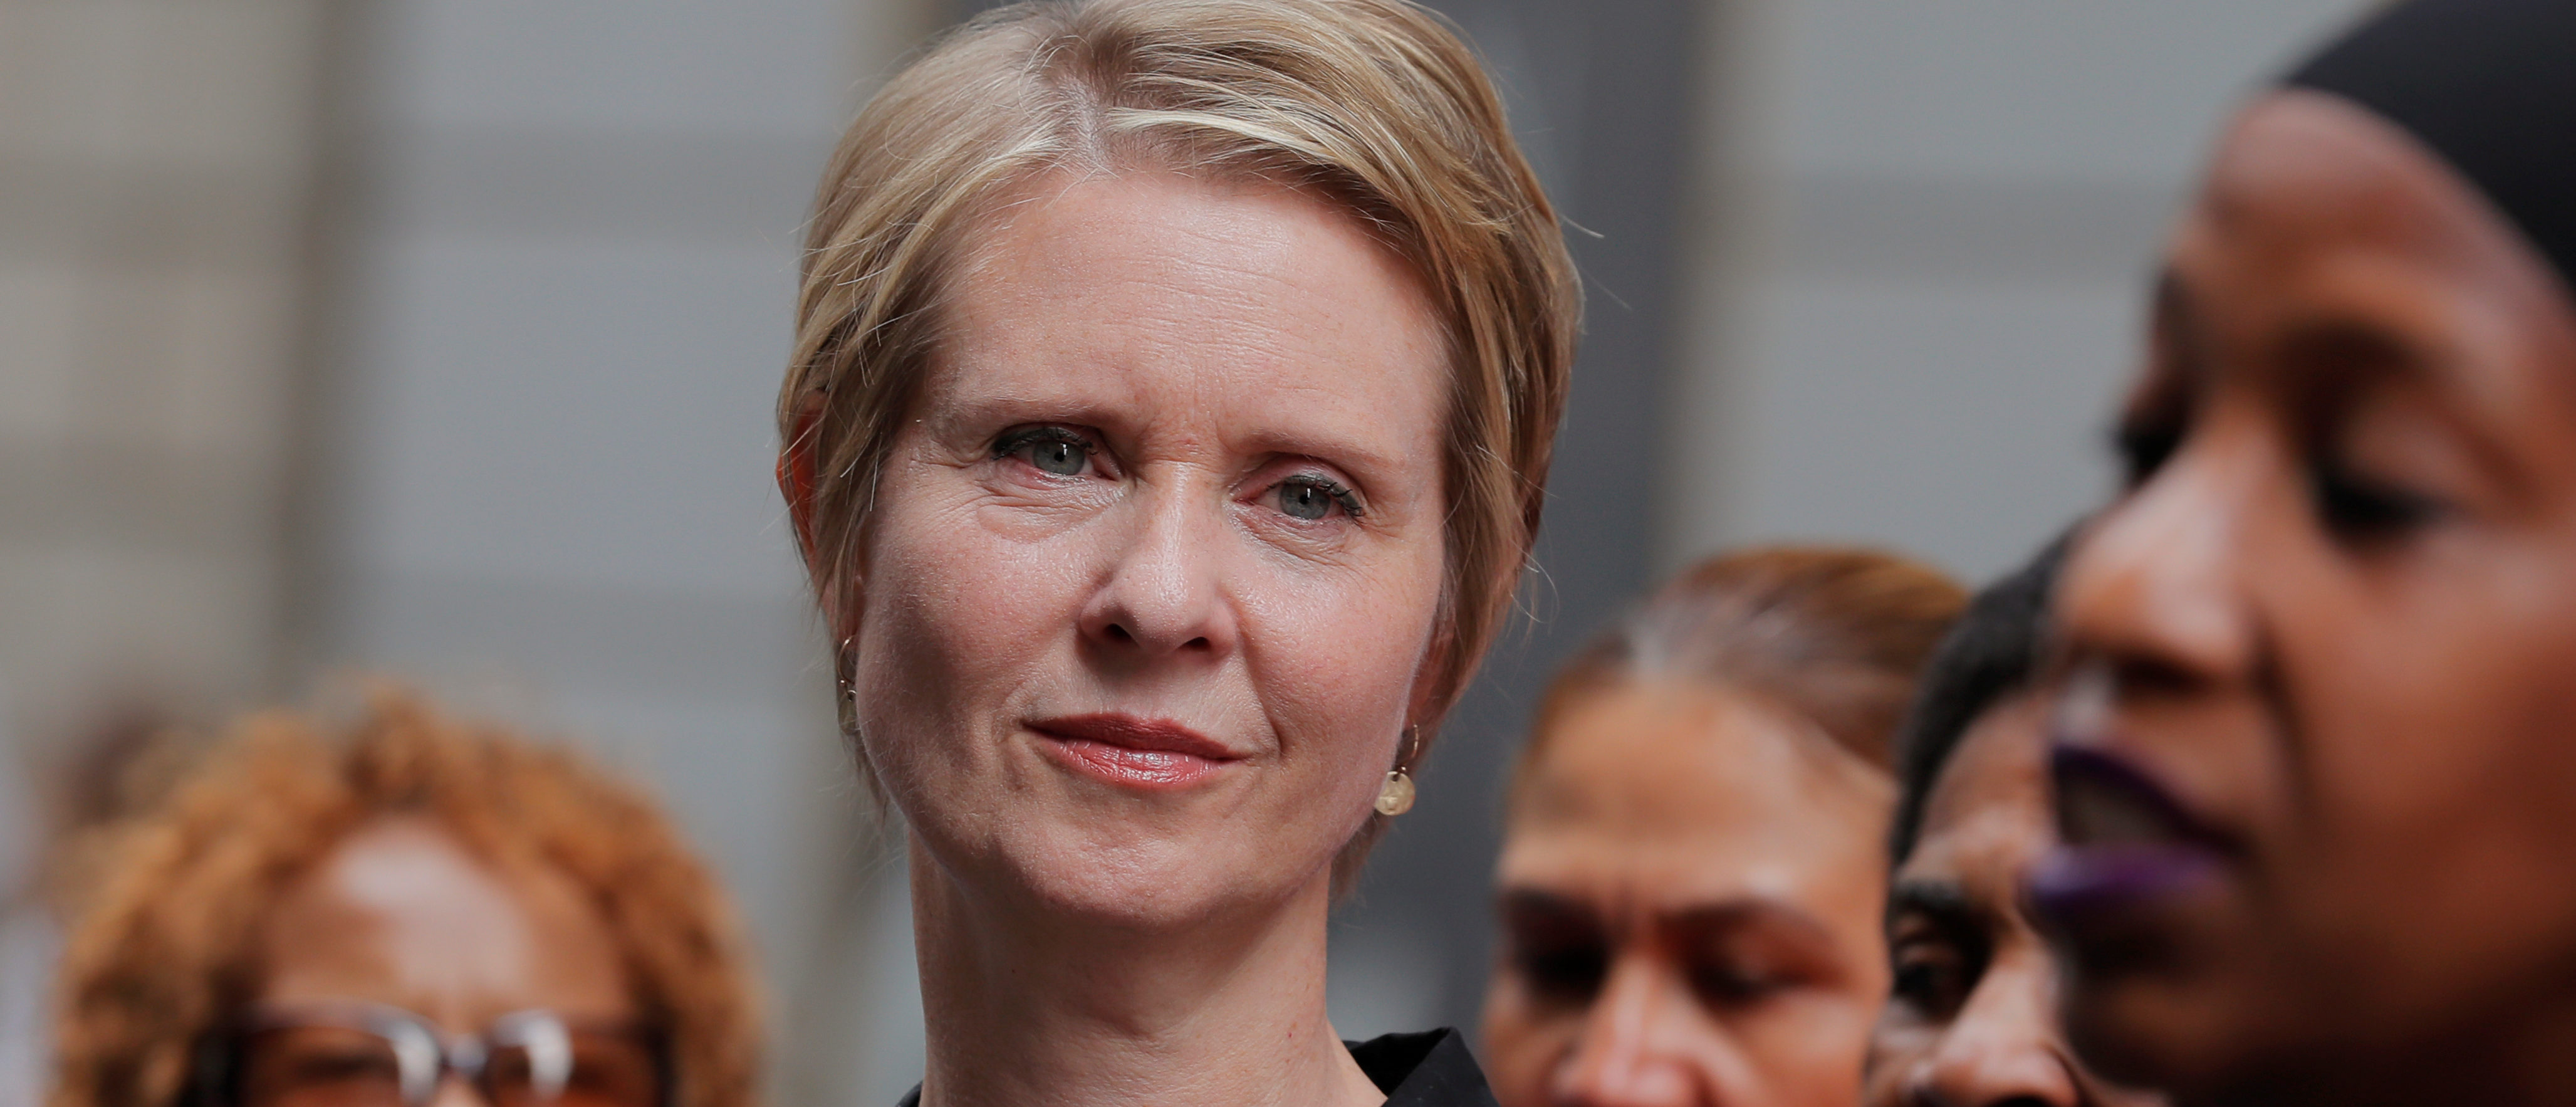 """Cynthia Nixon, former """"Sex and the City"""" star and current candidate for governor of New York, attends a campaign event on Wall St. in New York City, U.S., August 22, 2018. REUTERS/Brendan McDermid"""